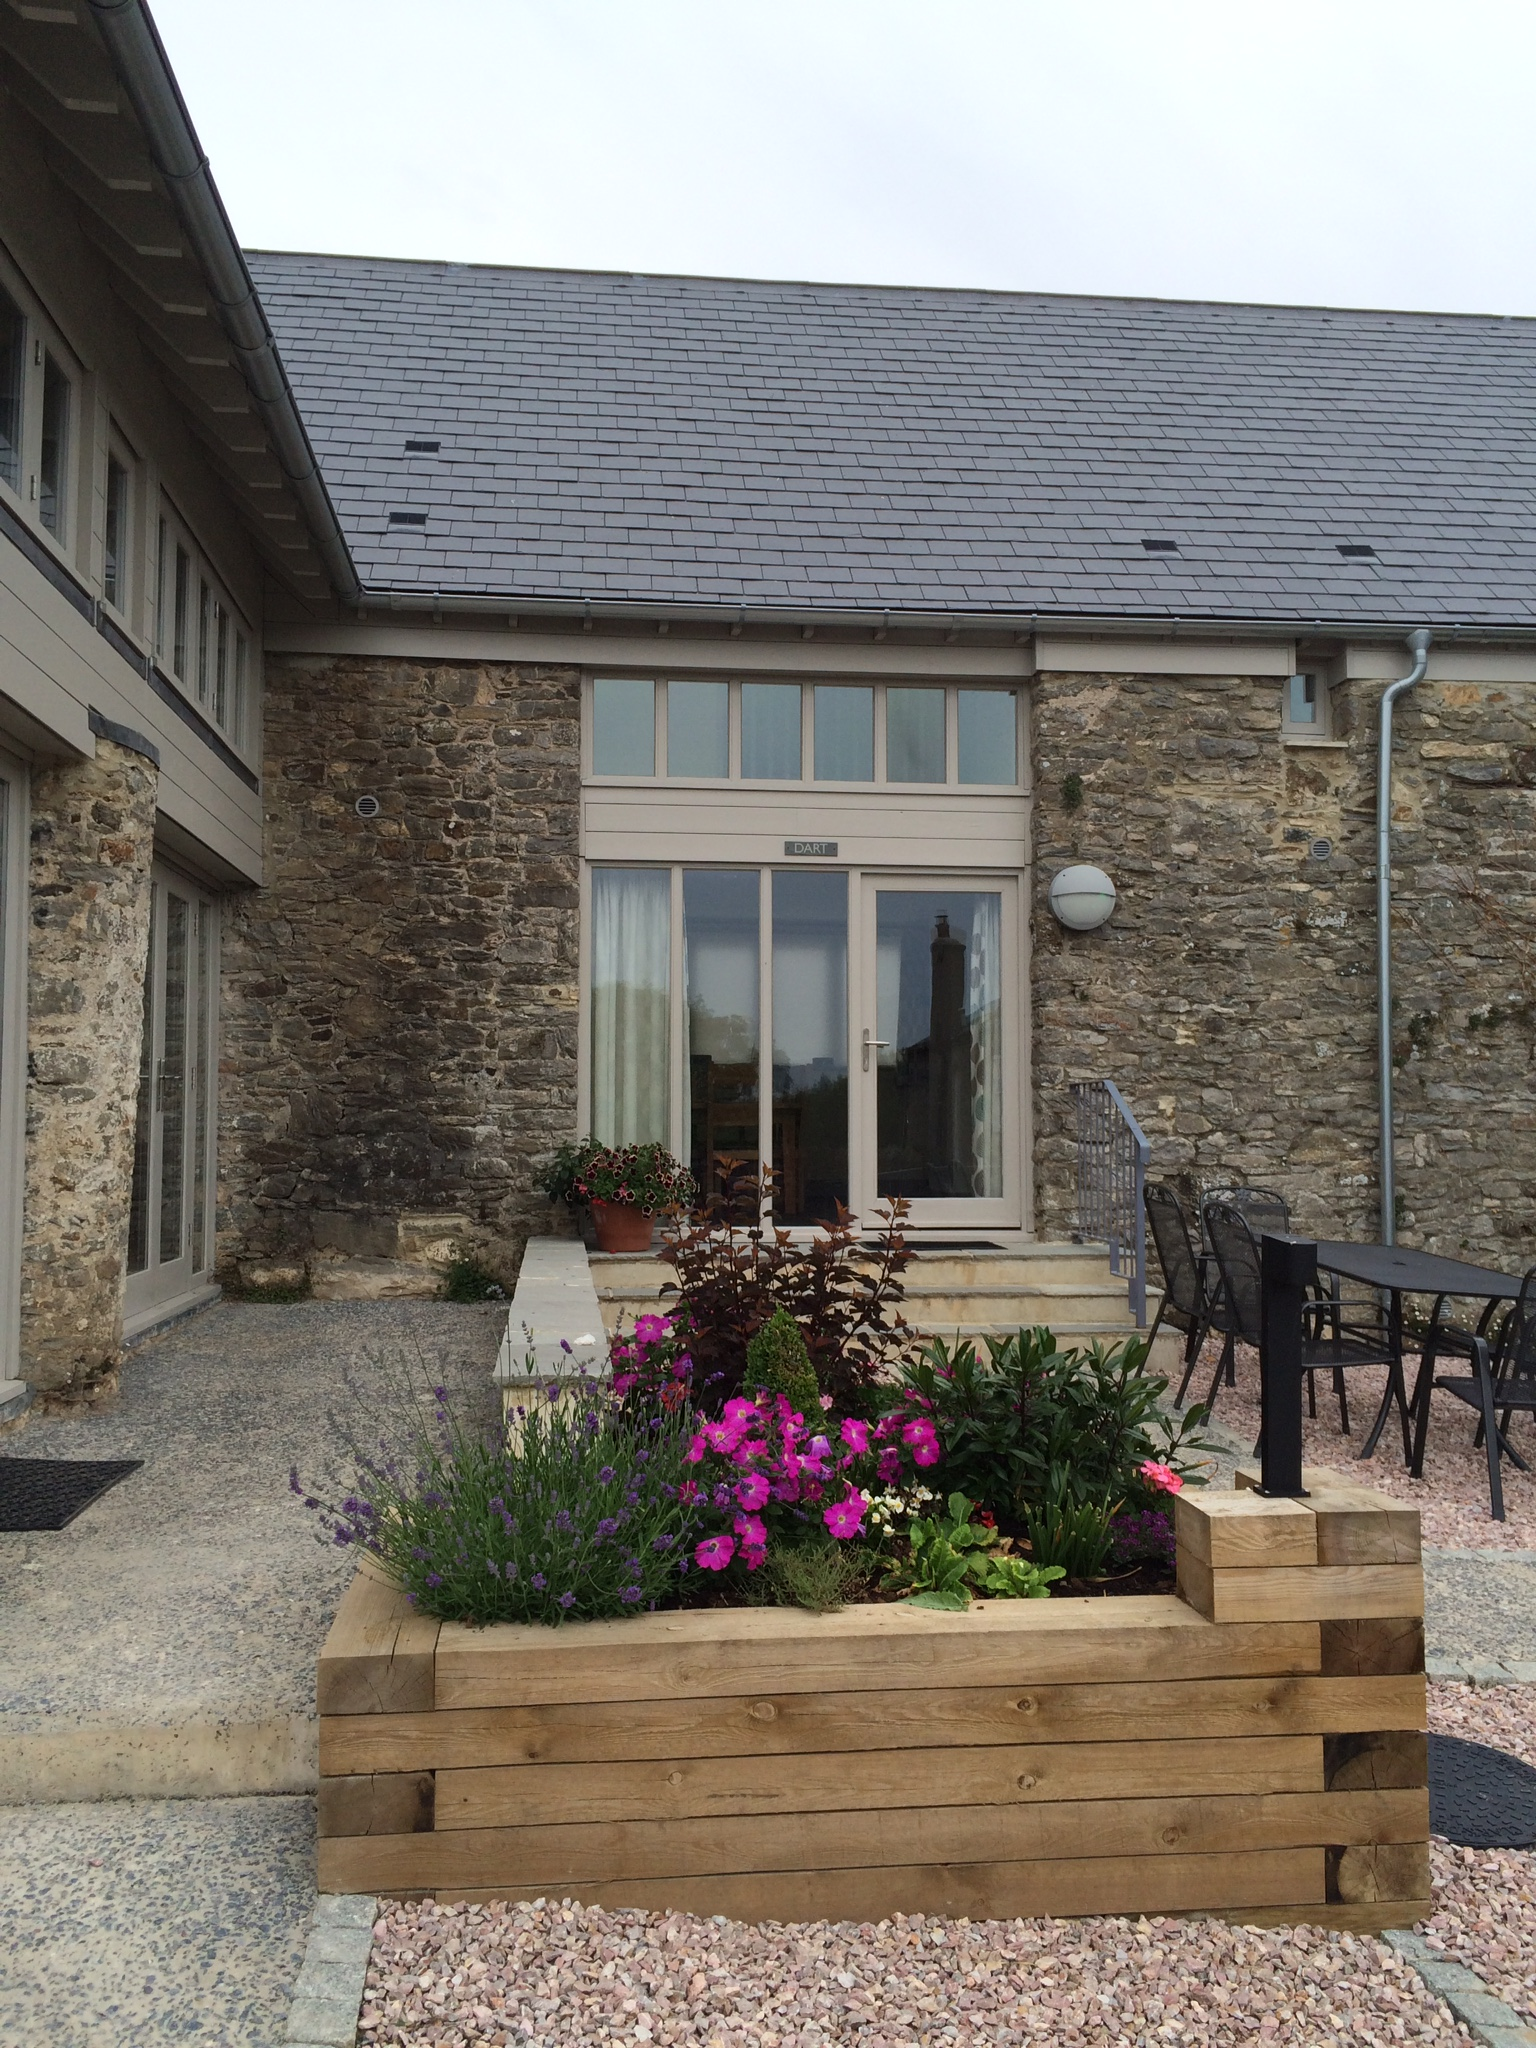 Barn conversion, new slate roof, repointed walls, timber planter with flowers in foreground.